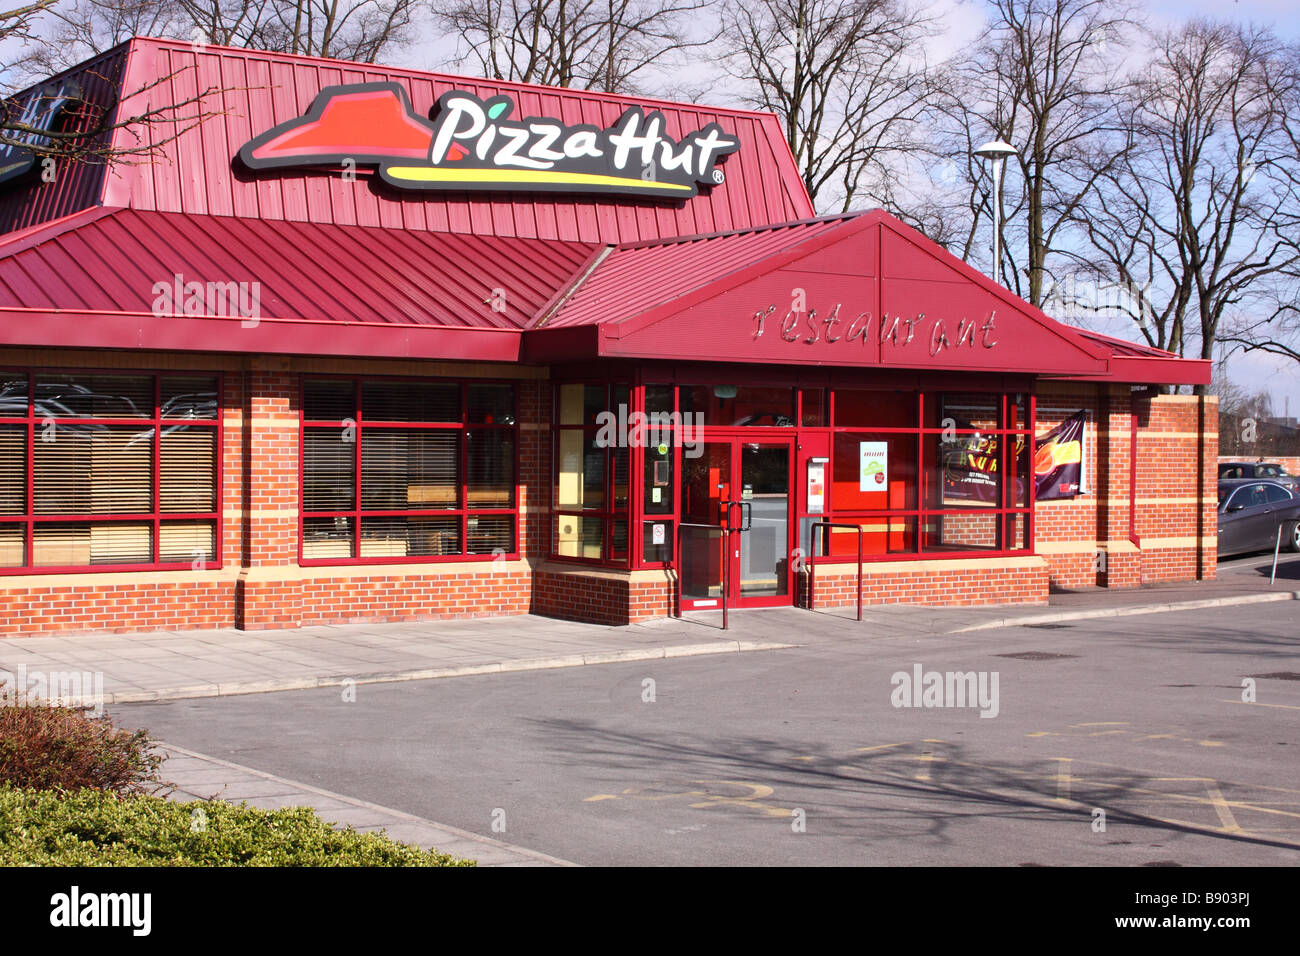 pizza hut restaurant in mansfield Stock Photo Royalty Free Image